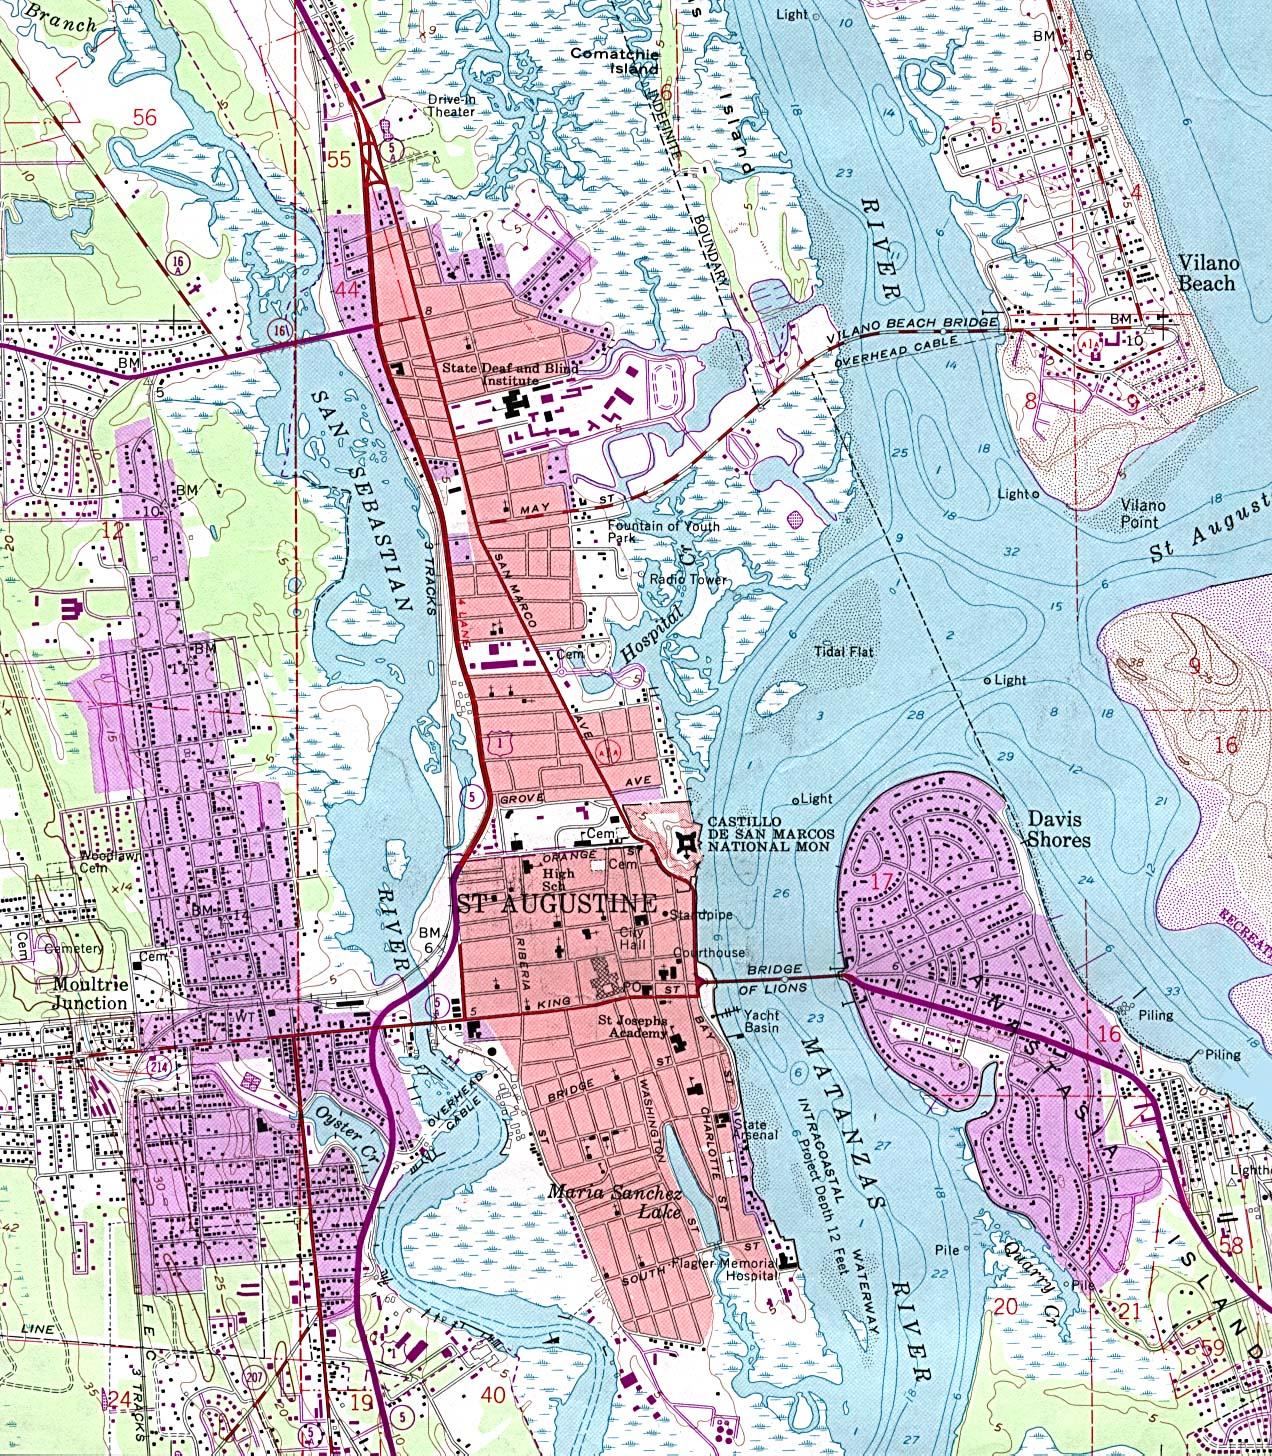 St. Augustine Topographic City Map, Florida, United States